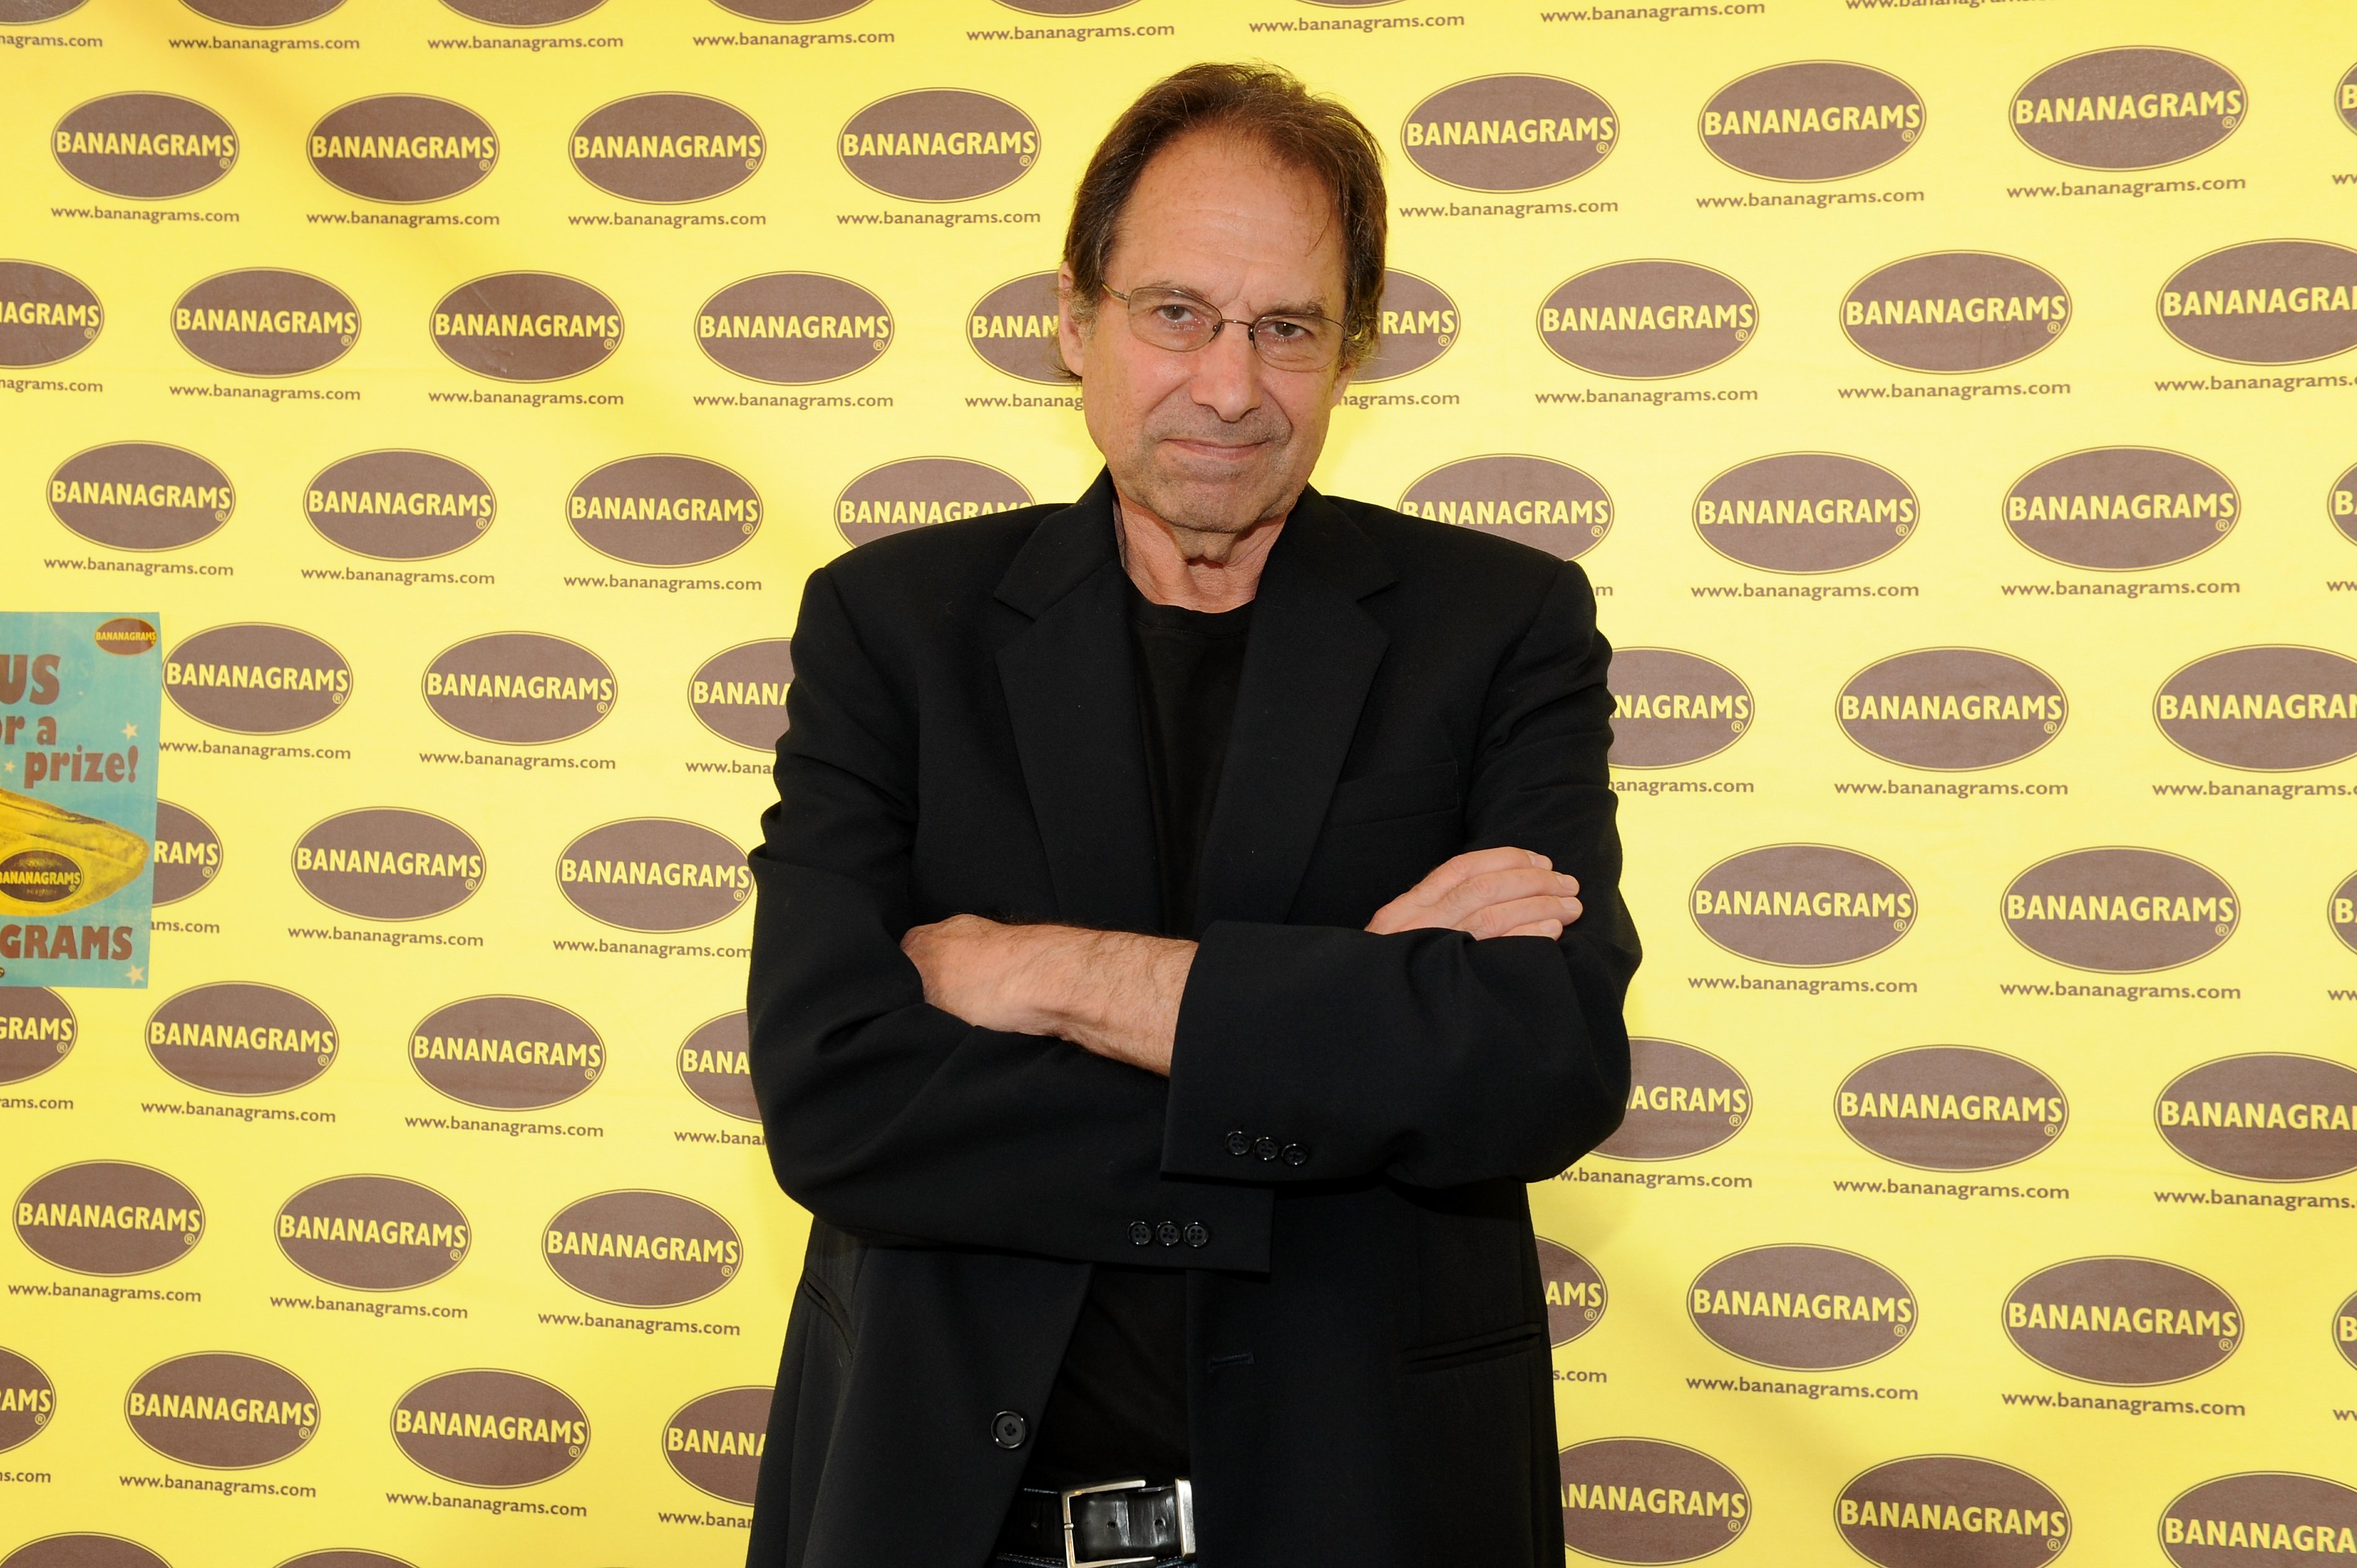 David Milch attends Vulture Festival in New York City on May 10, 2014 | Photo: Getty Images